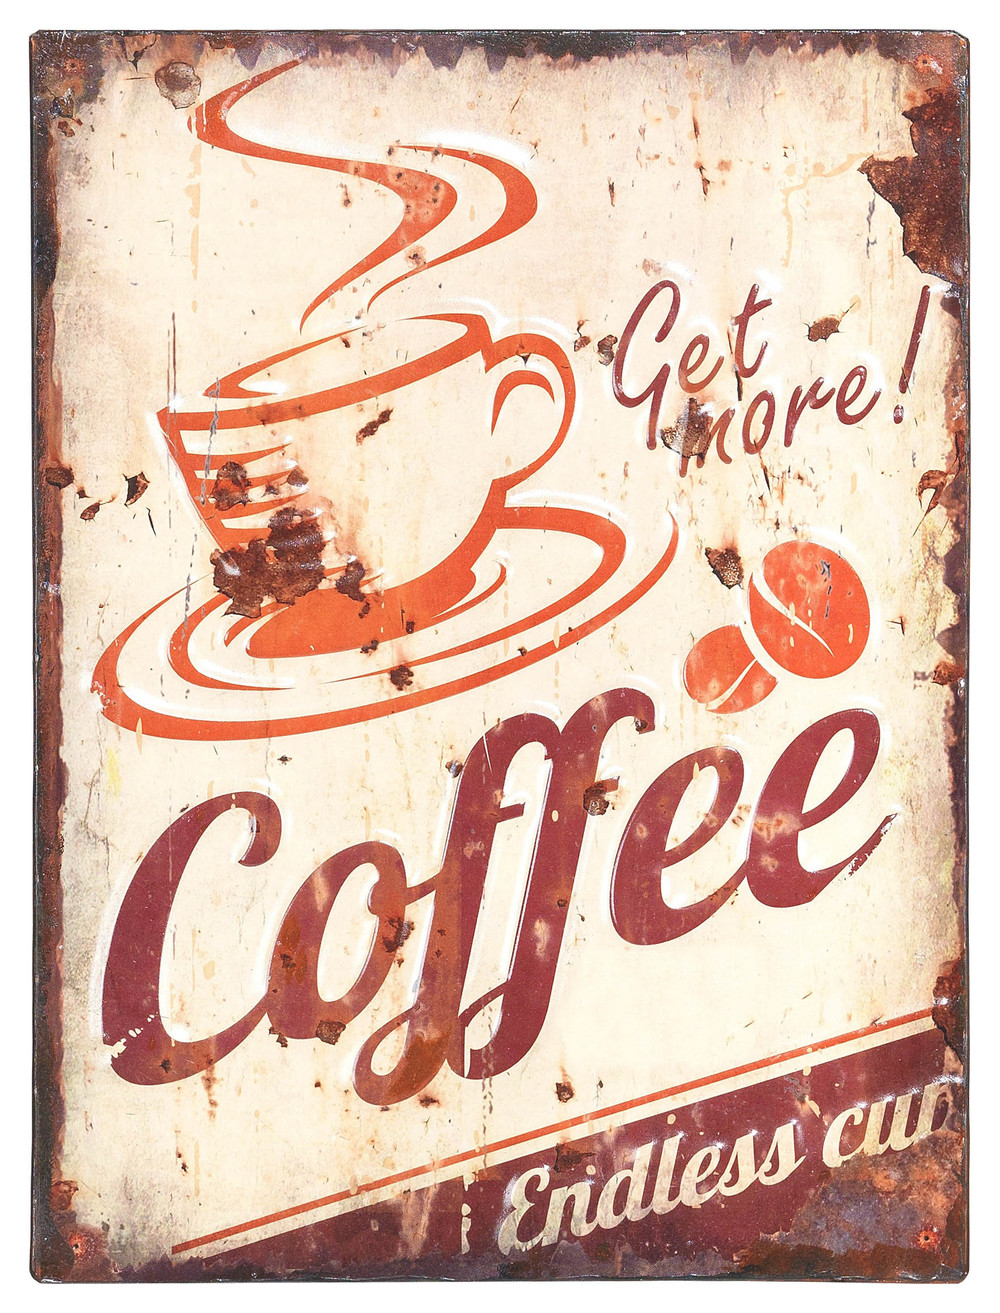 €18 METAL WALL PRINTED PAINTING 'COFFEE' BROWN 30Χ40